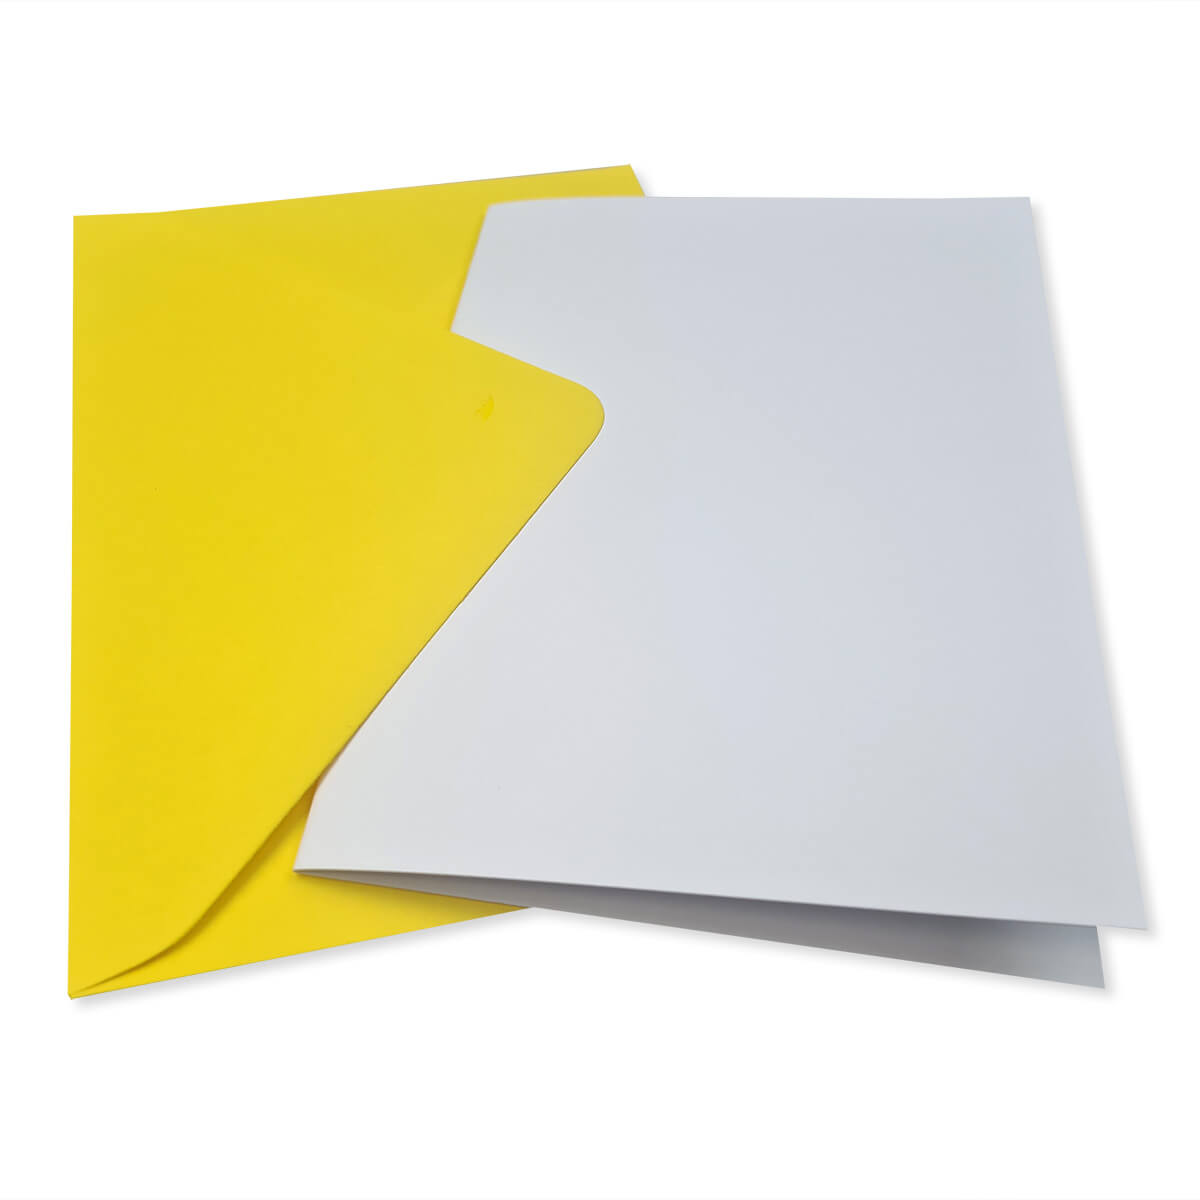 A6 WHITE CARD BLANKS & BRIGHT YELLOW ENVELOPES (PACK OF 10)